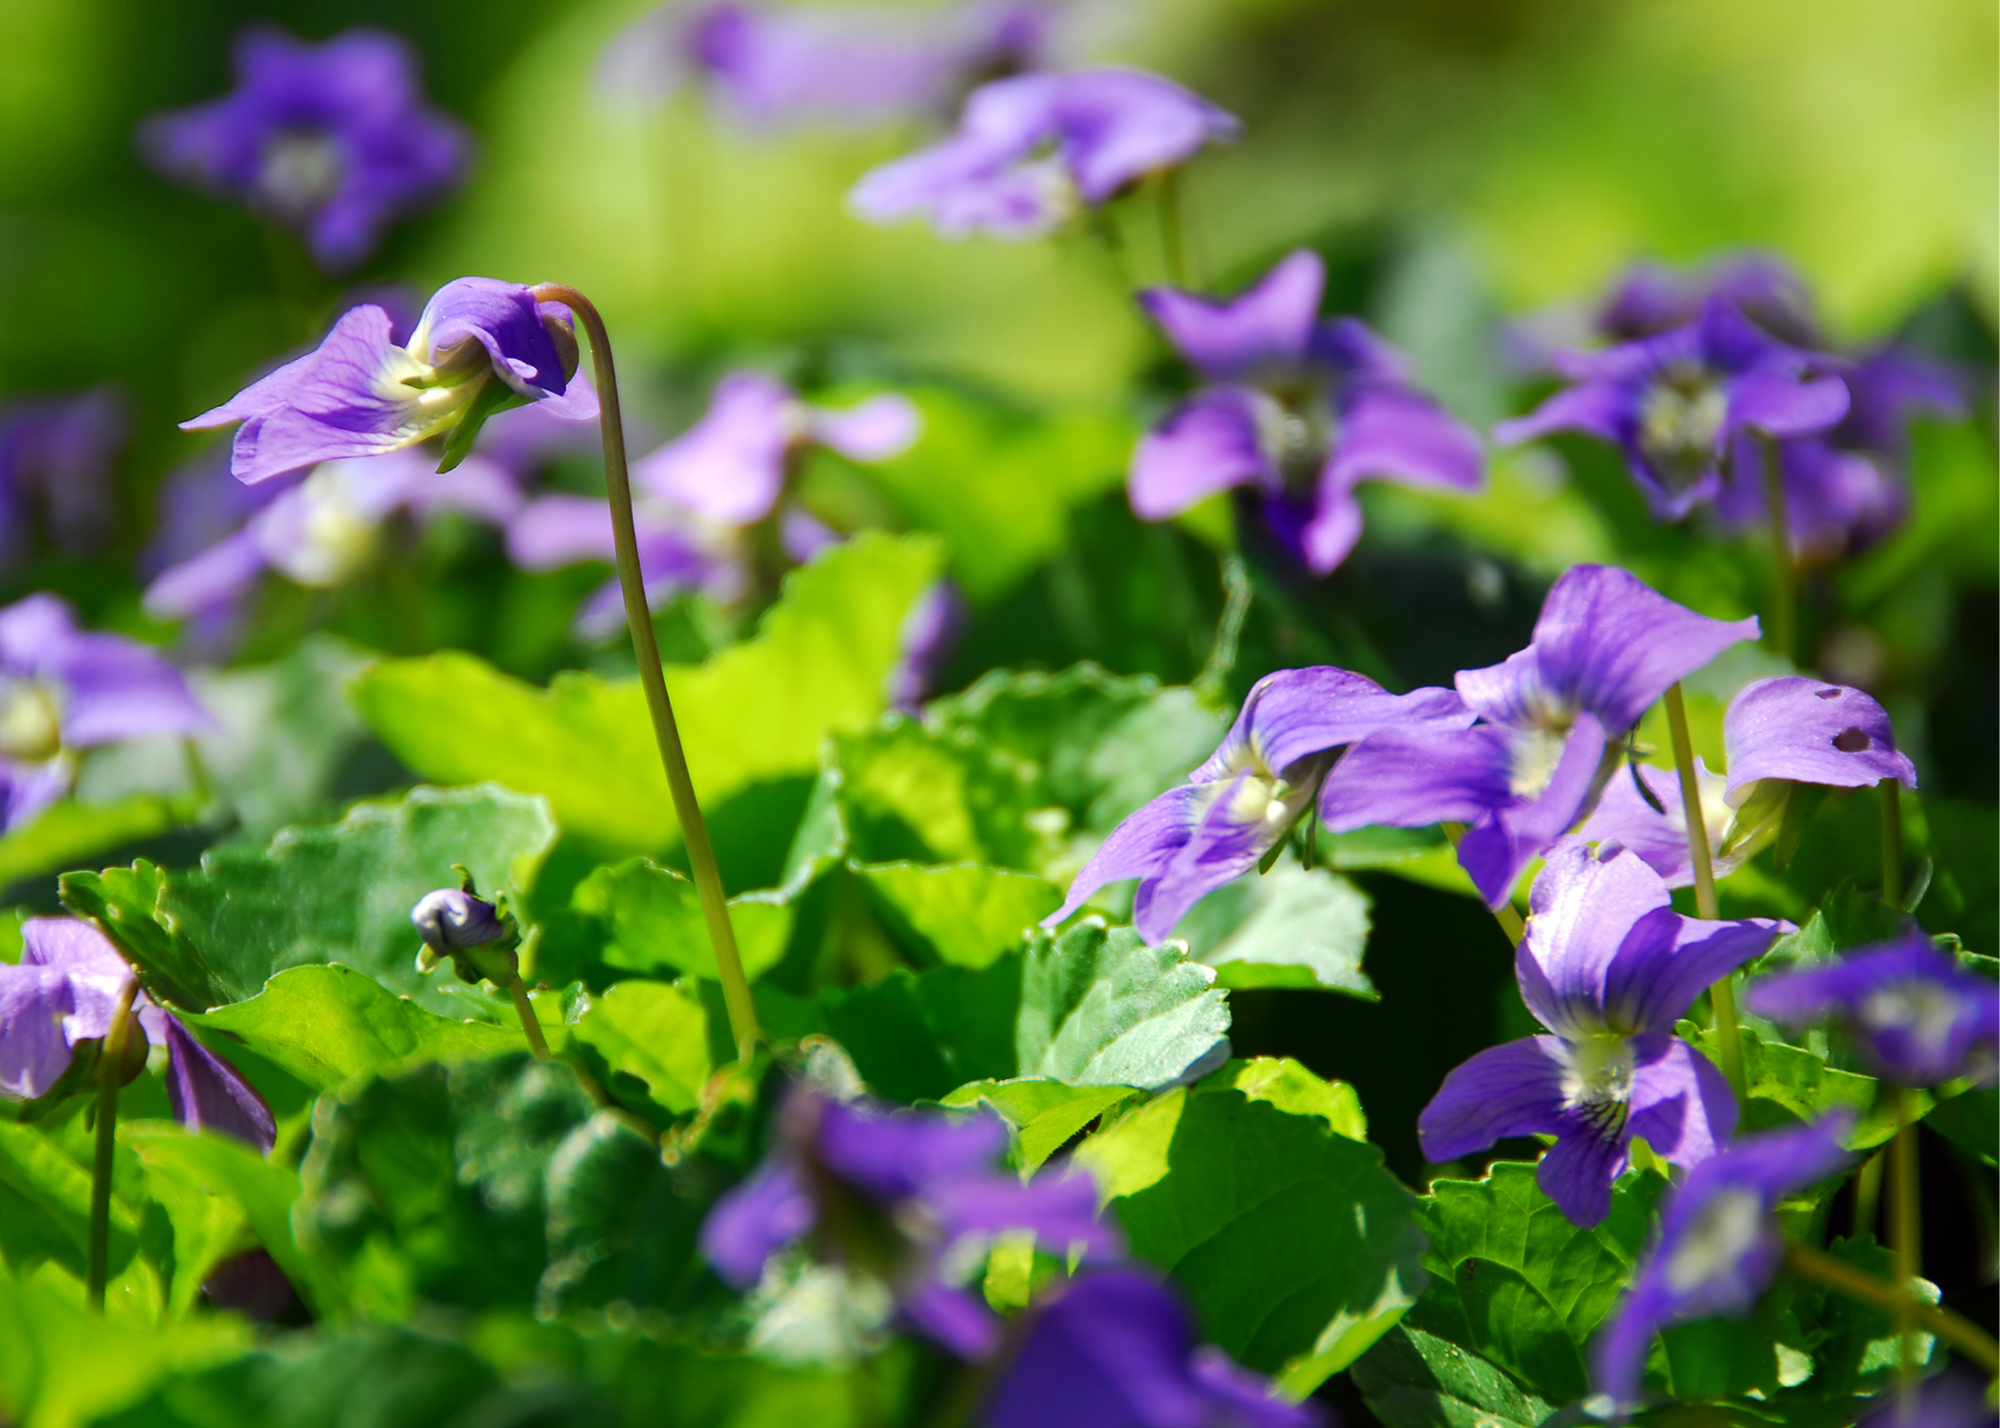 patch of wild violets